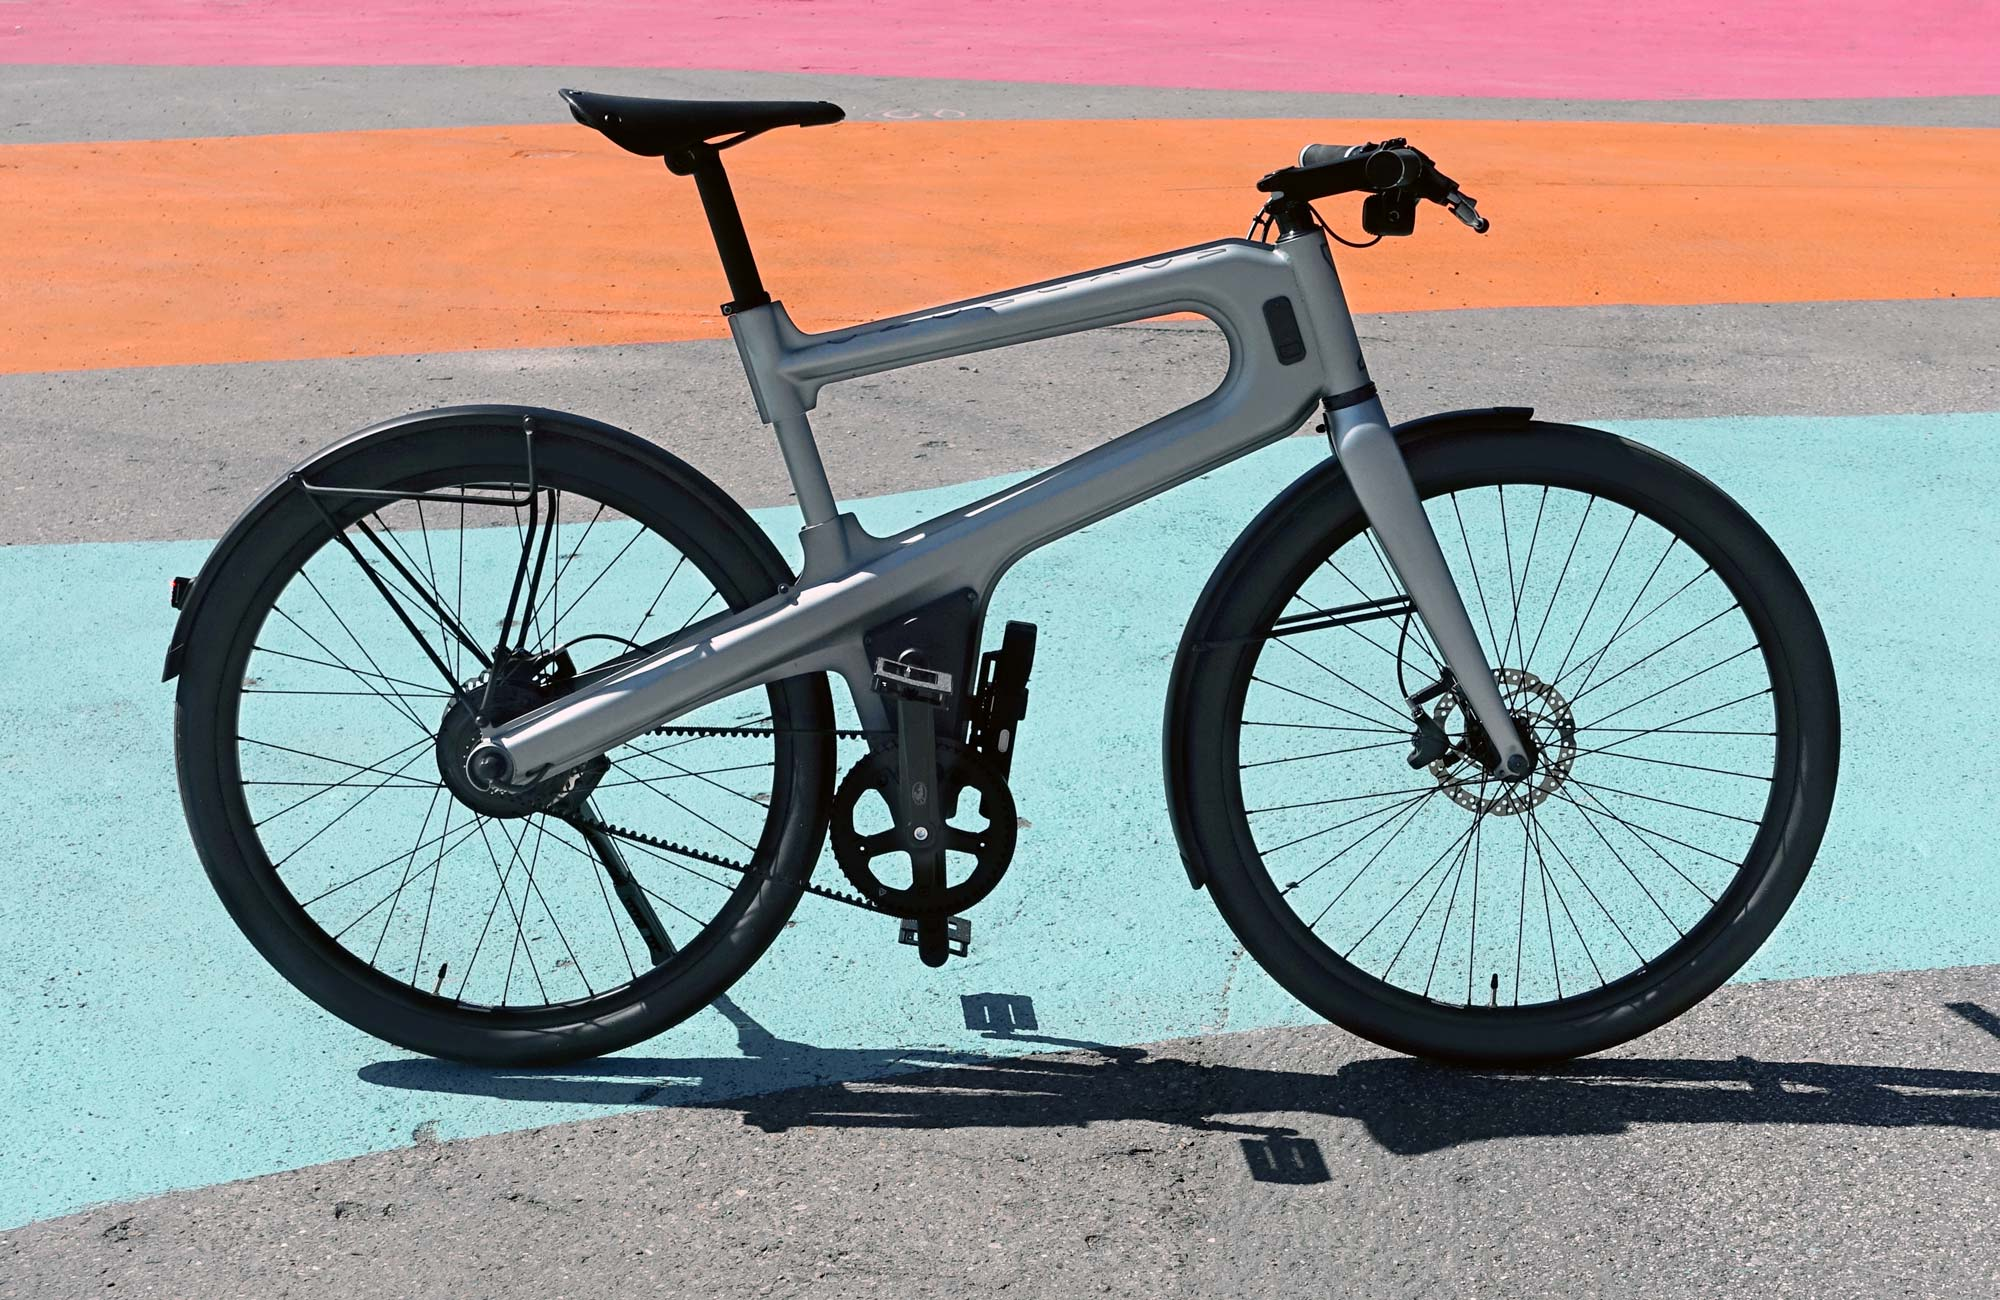 Special through and through: Mokumono's Delta S singlespeed e-bike in the test